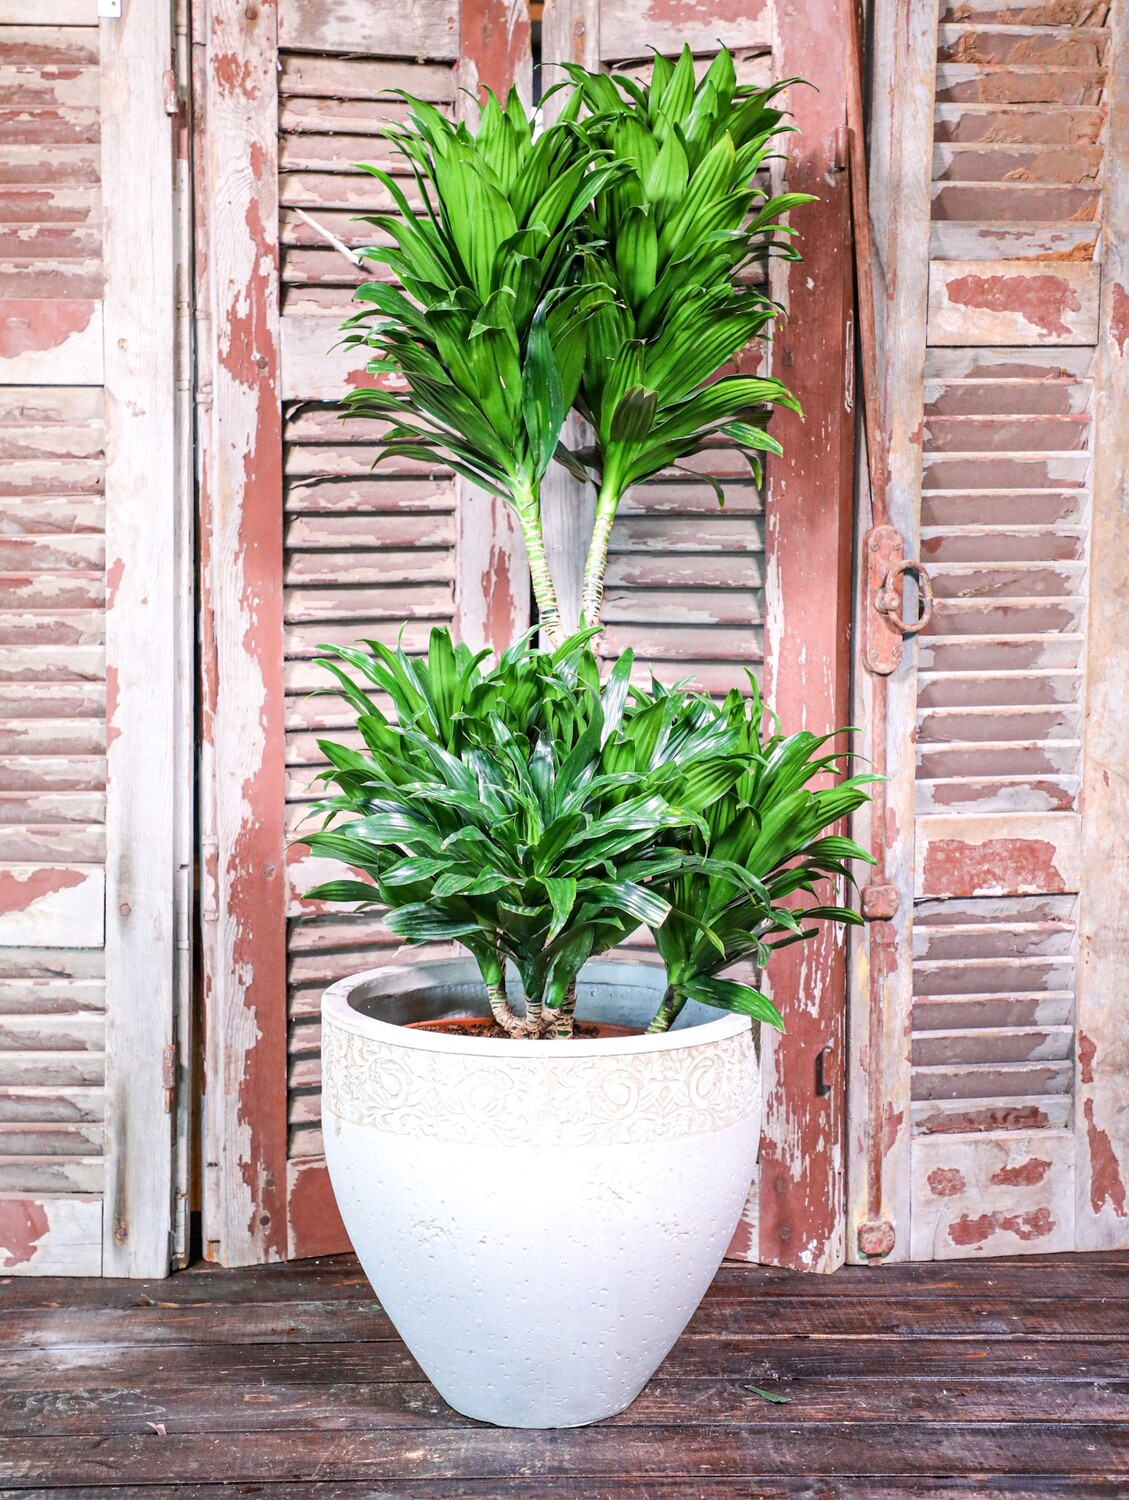 Dracaena compacta (Plant) - Nature by Marc Beyrouthy